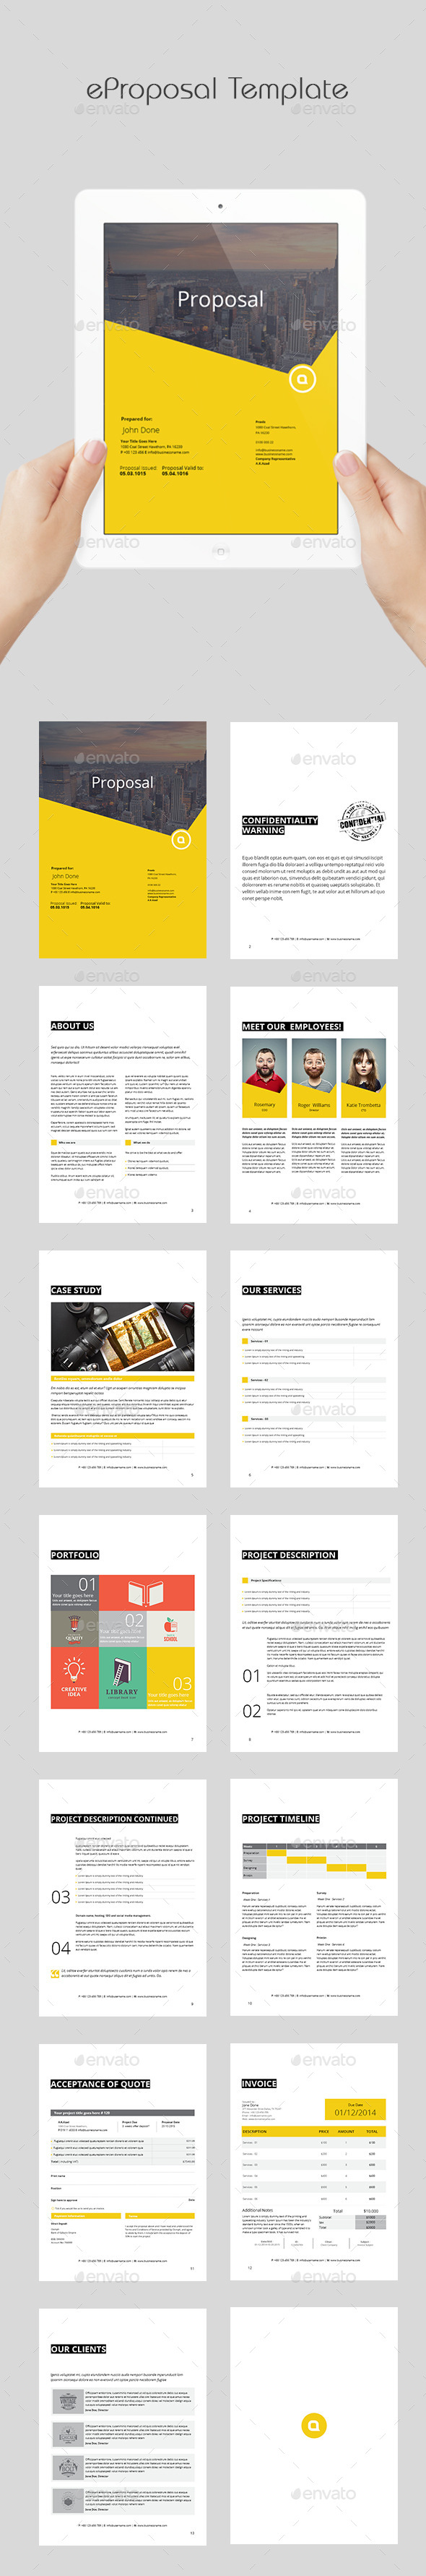 eProposal Template - ePublishing